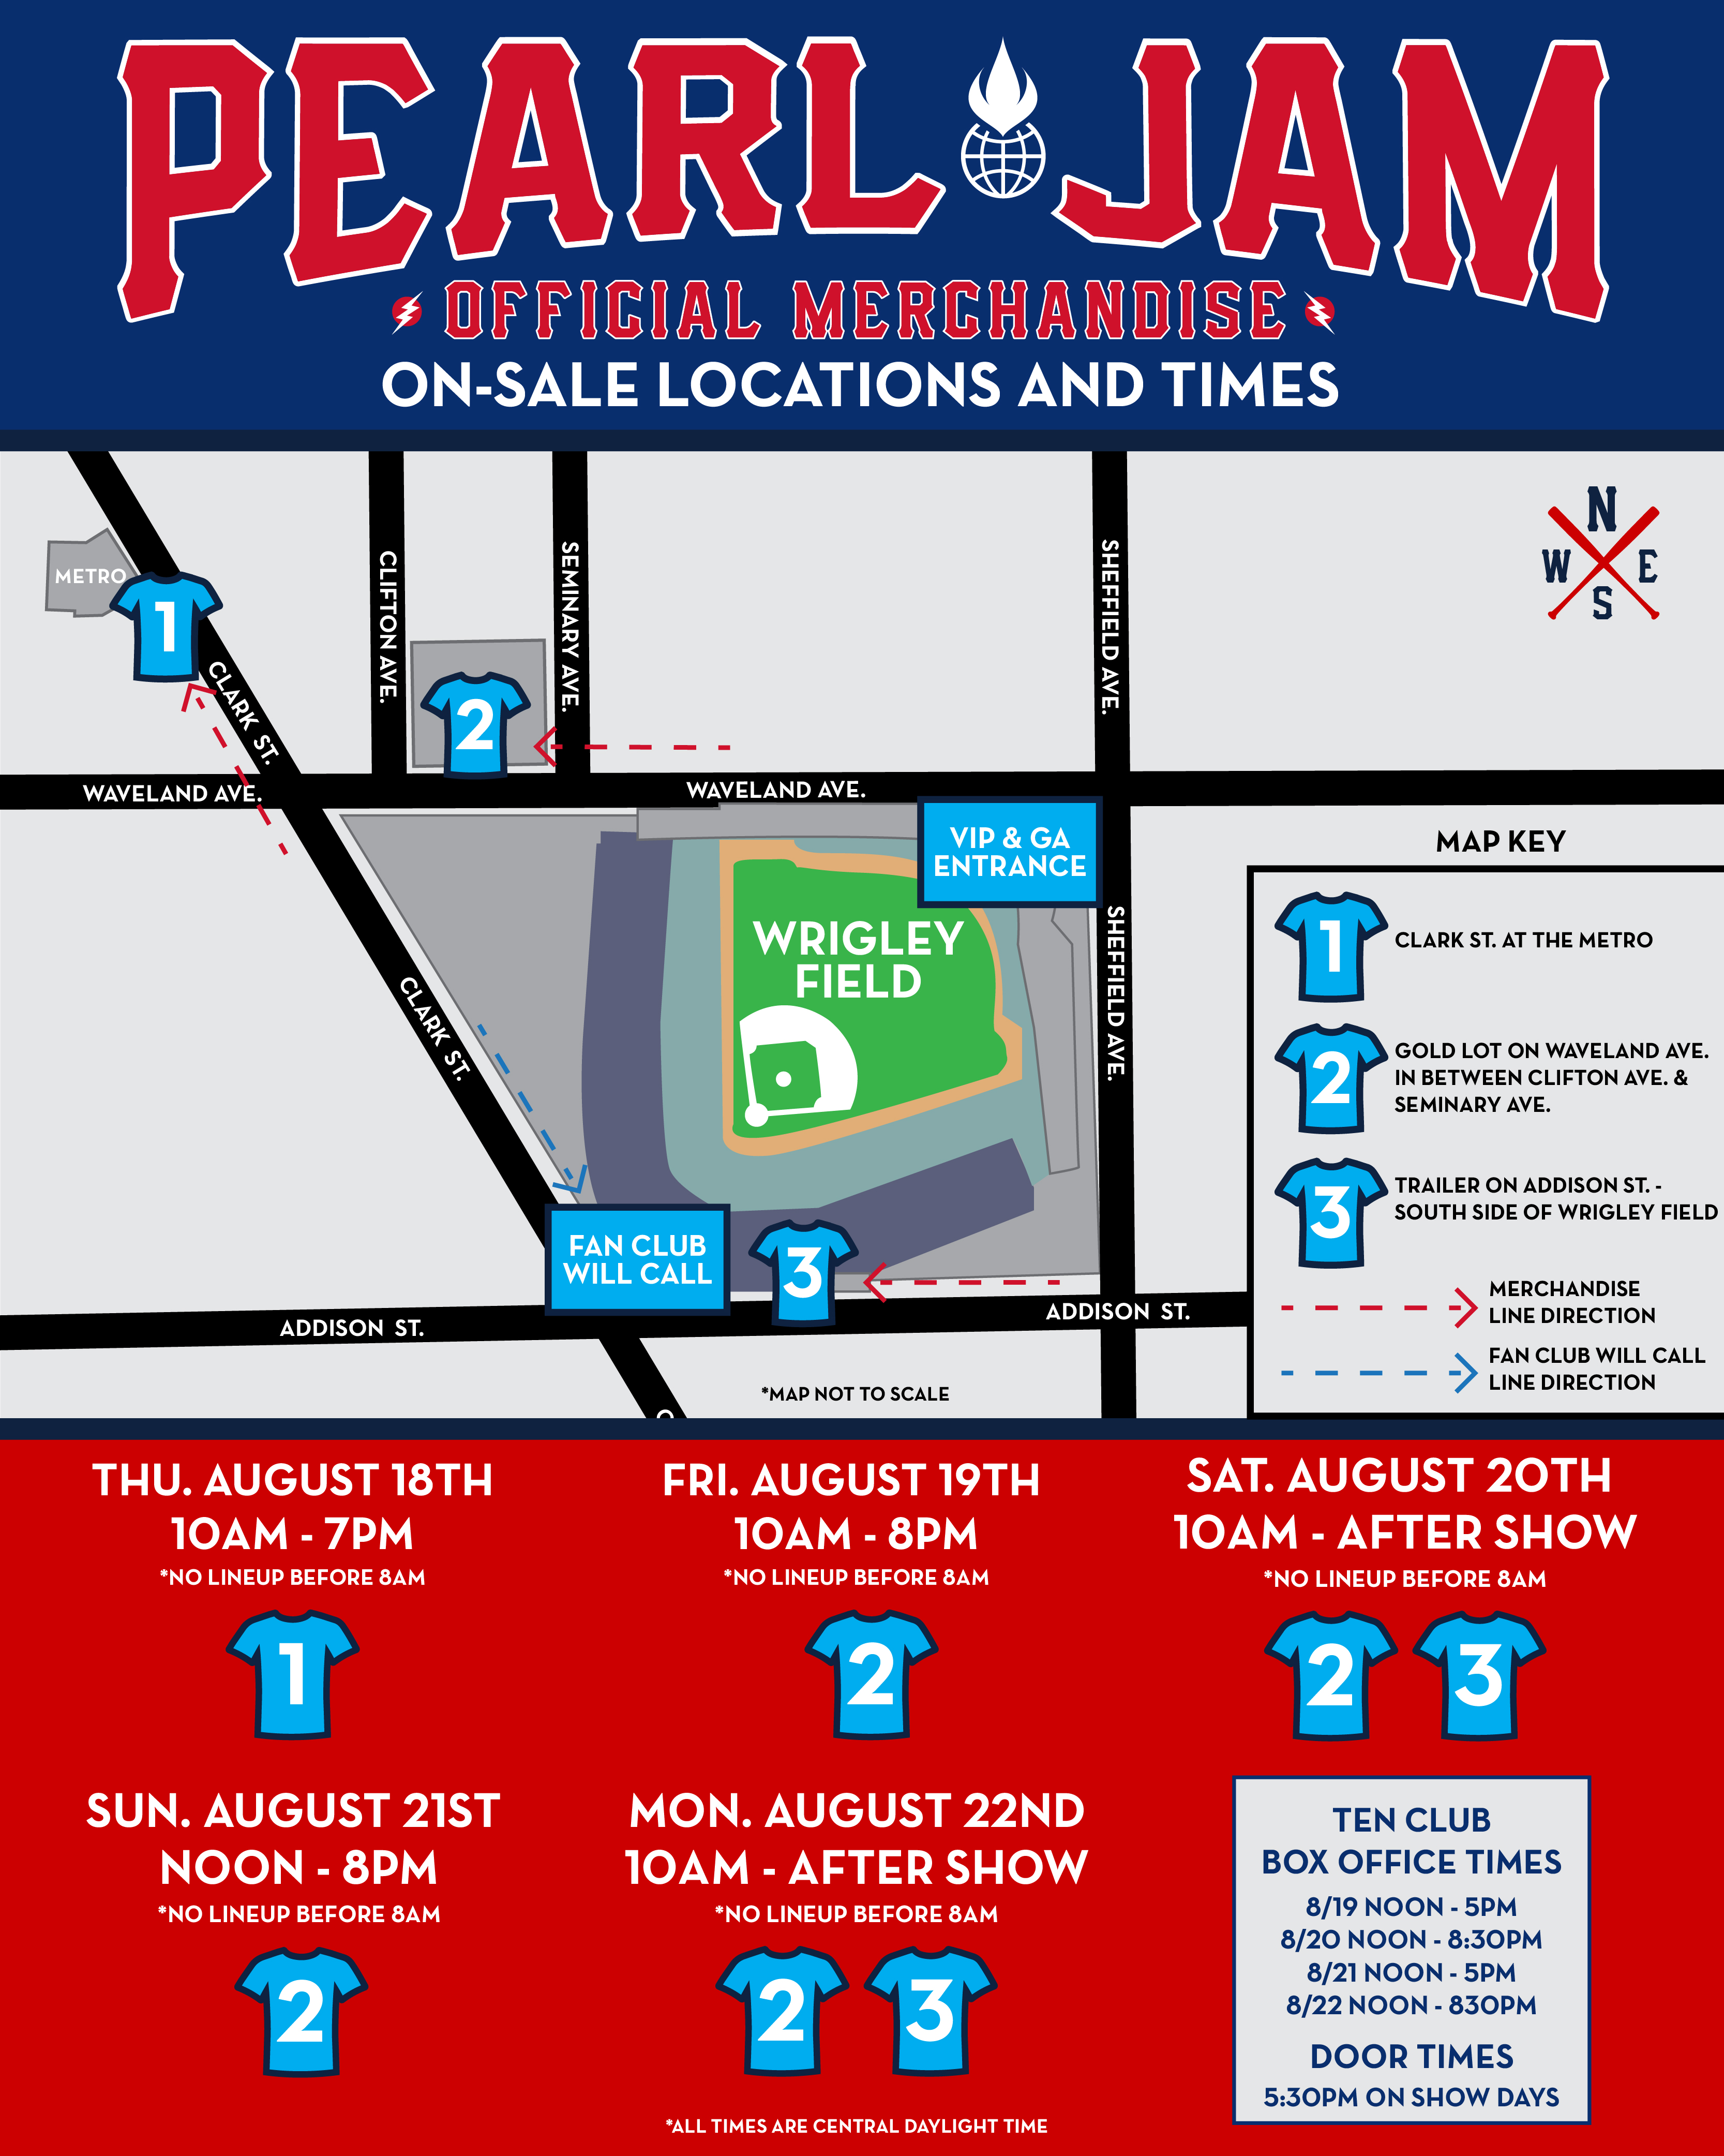 Chicago Subway Map Wrigley Field.Pearl Jam Wrigley Field Official Merch Schedule